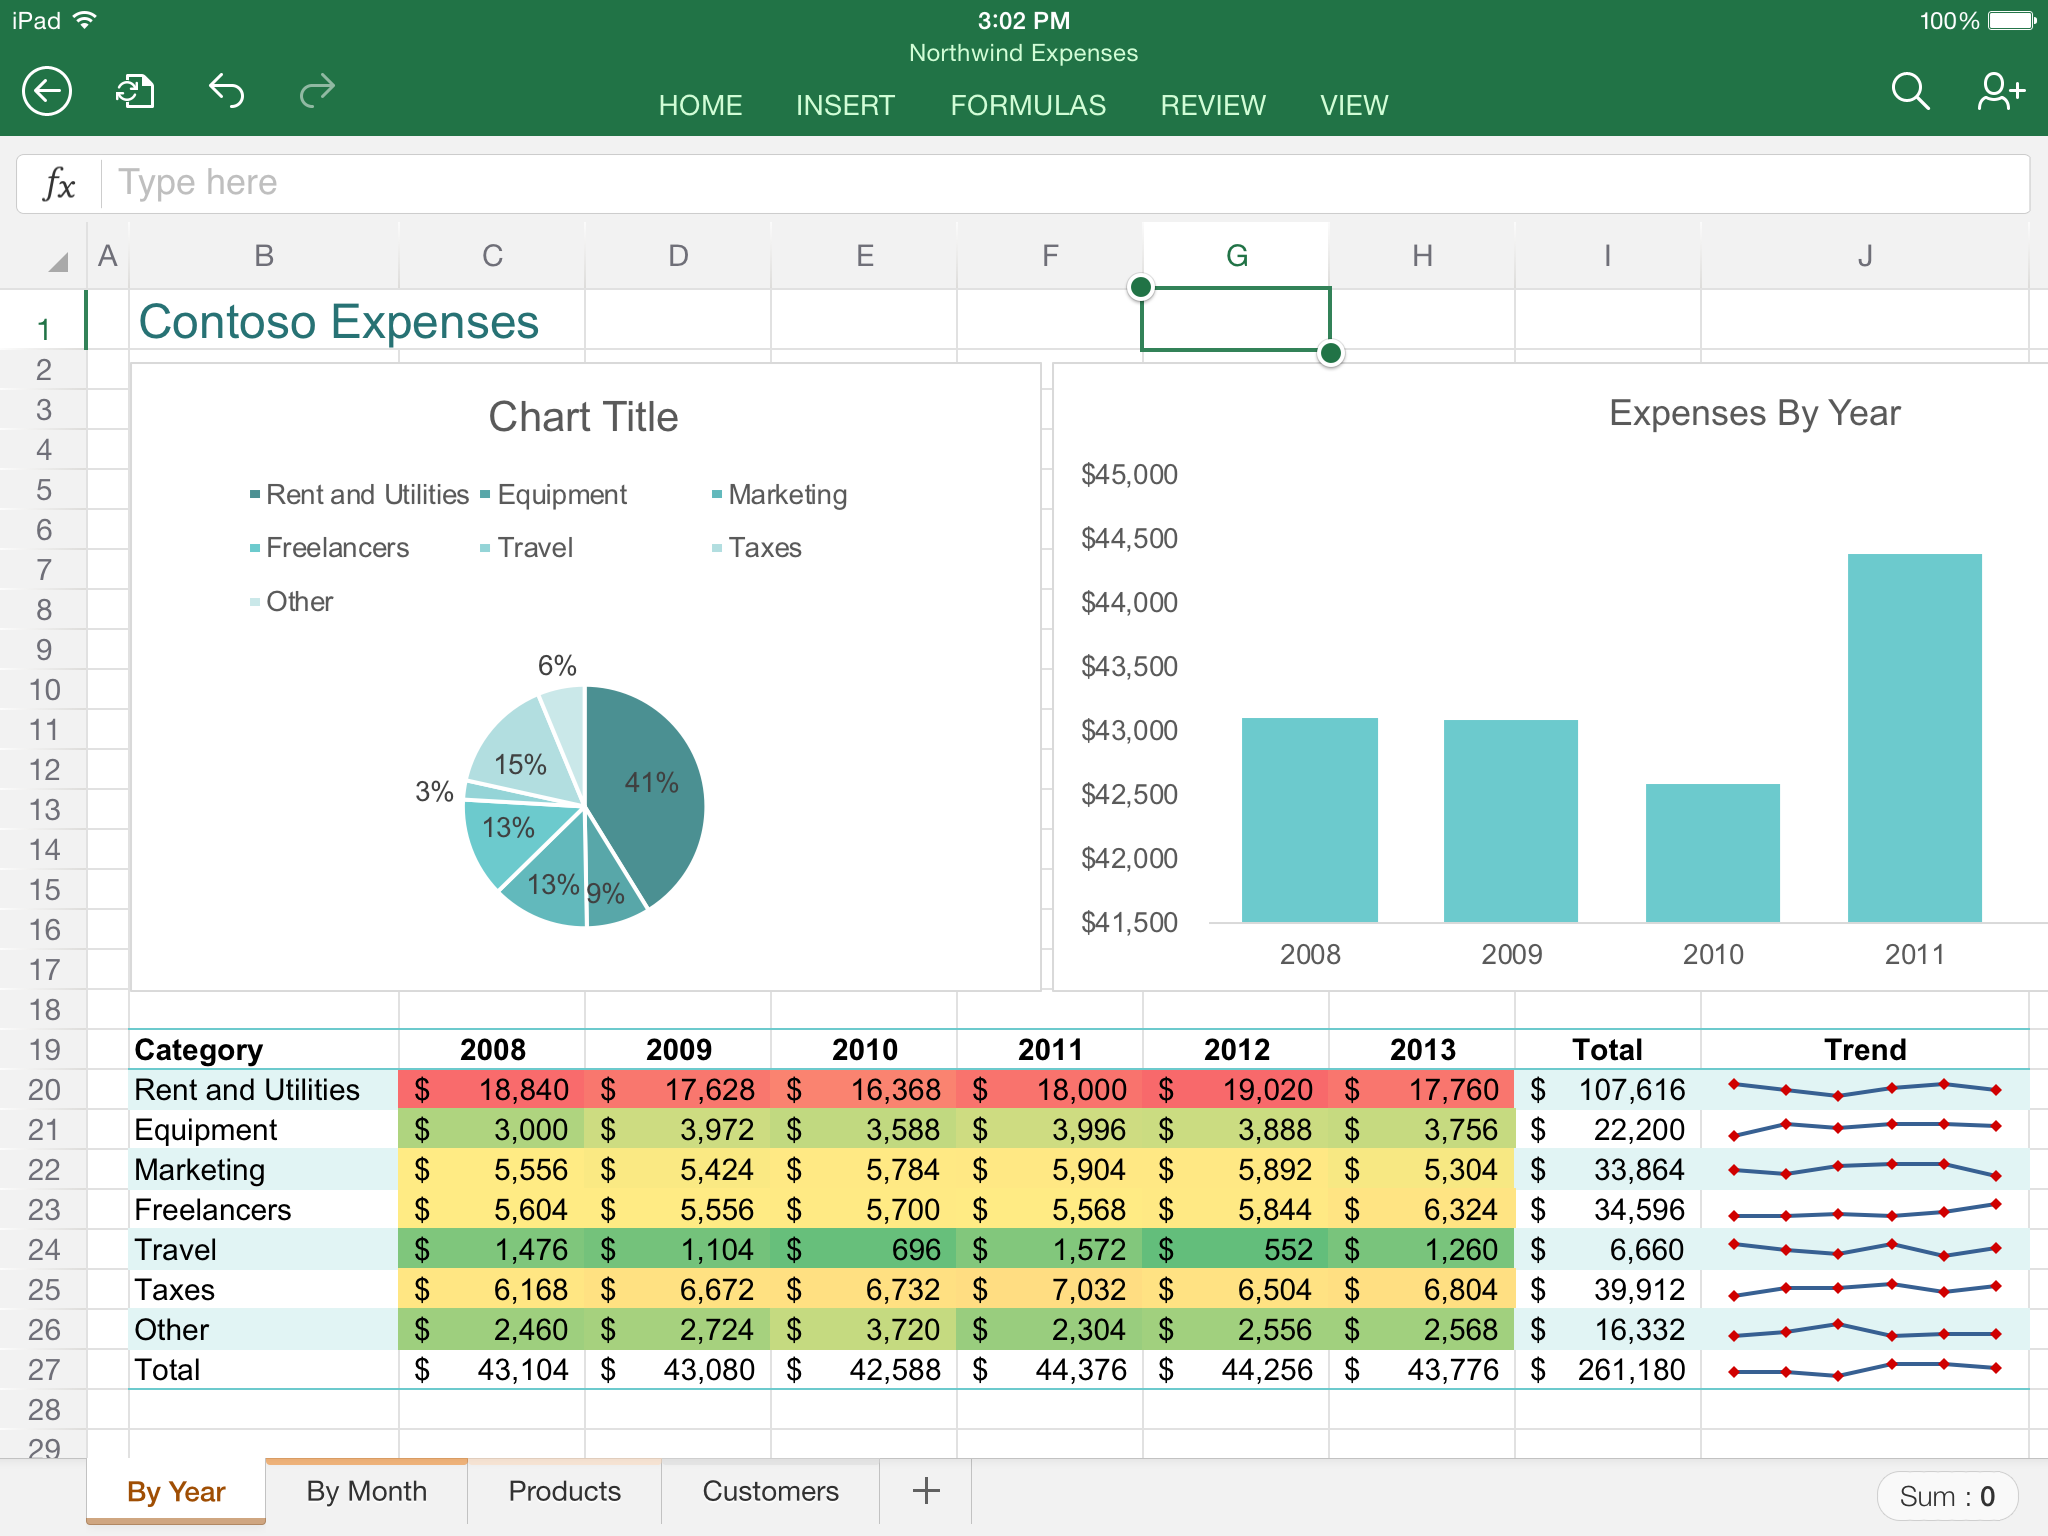 Ediblewildsus  Picturesque App Highlight Excel  Mobile Digital Now With Handsome Excel In Action With Cool Excel Dashboards And Reports Also How To Do Countif In Excel In Addition How To Pivot In Excel And Budget On Excel As Well As Excel Comparison Additionally Excel How To Hide Columns From Youstonybrookedu With Ediblewildsus  Handsome App Highlight Excel  Mobile Digital Now With Cool Excel In Action And Picturesque Excel Dashboards And Reports Also How To Do Countif In Excel In Addition How To Pivot In Excel From Youstonybrookedu